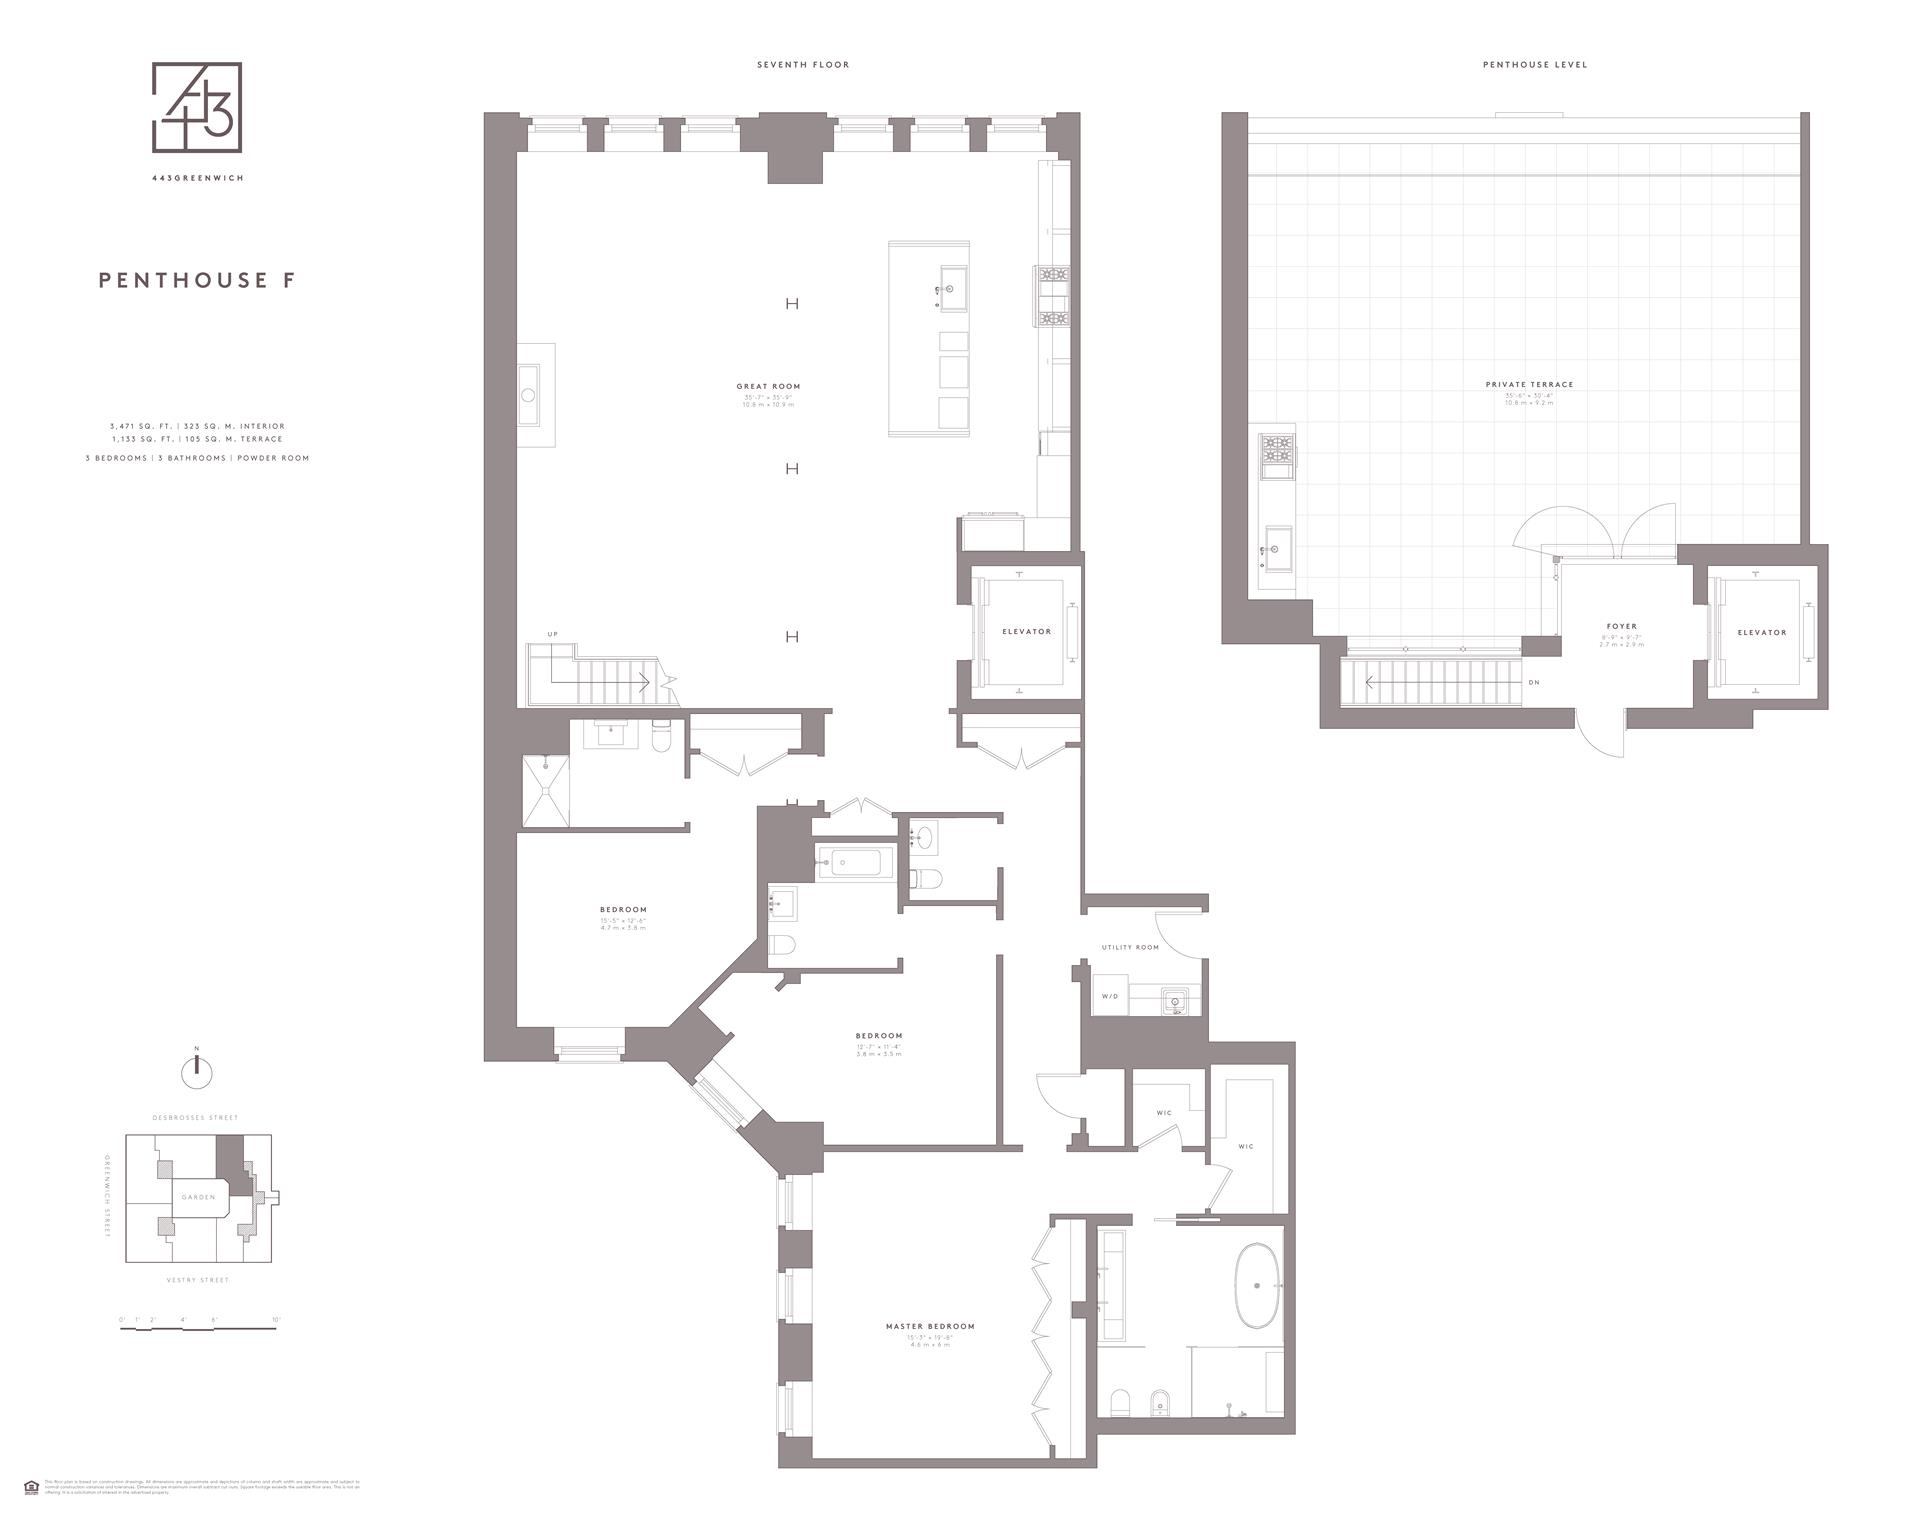 Floor plan of 443 Greenwich St, PHF - TriBeCa, New York